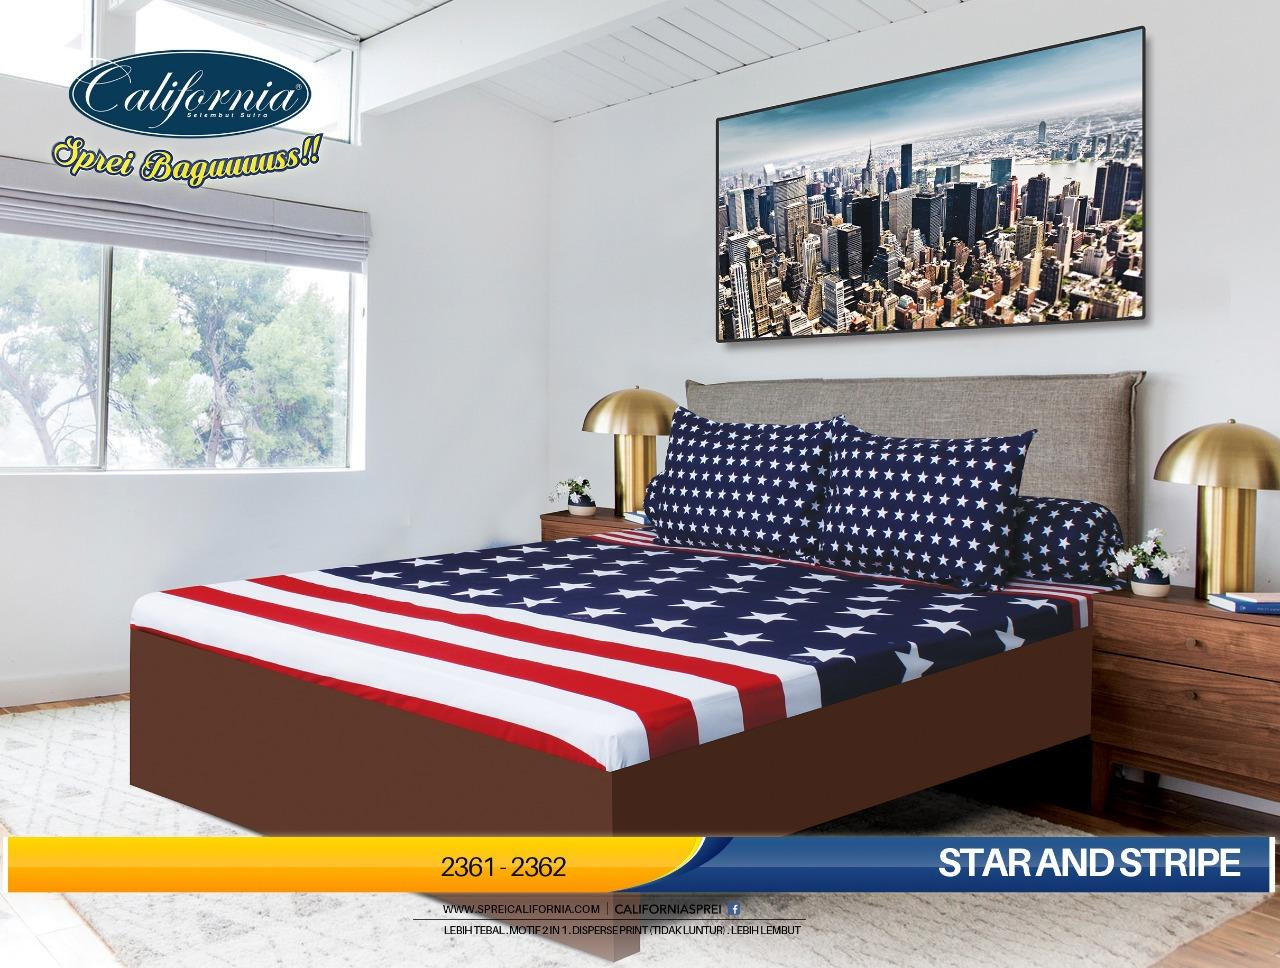 Sprei CALIFORNIA Motif STAR AND STRIPE 180 x 200 cm King Size bendera America merah biru